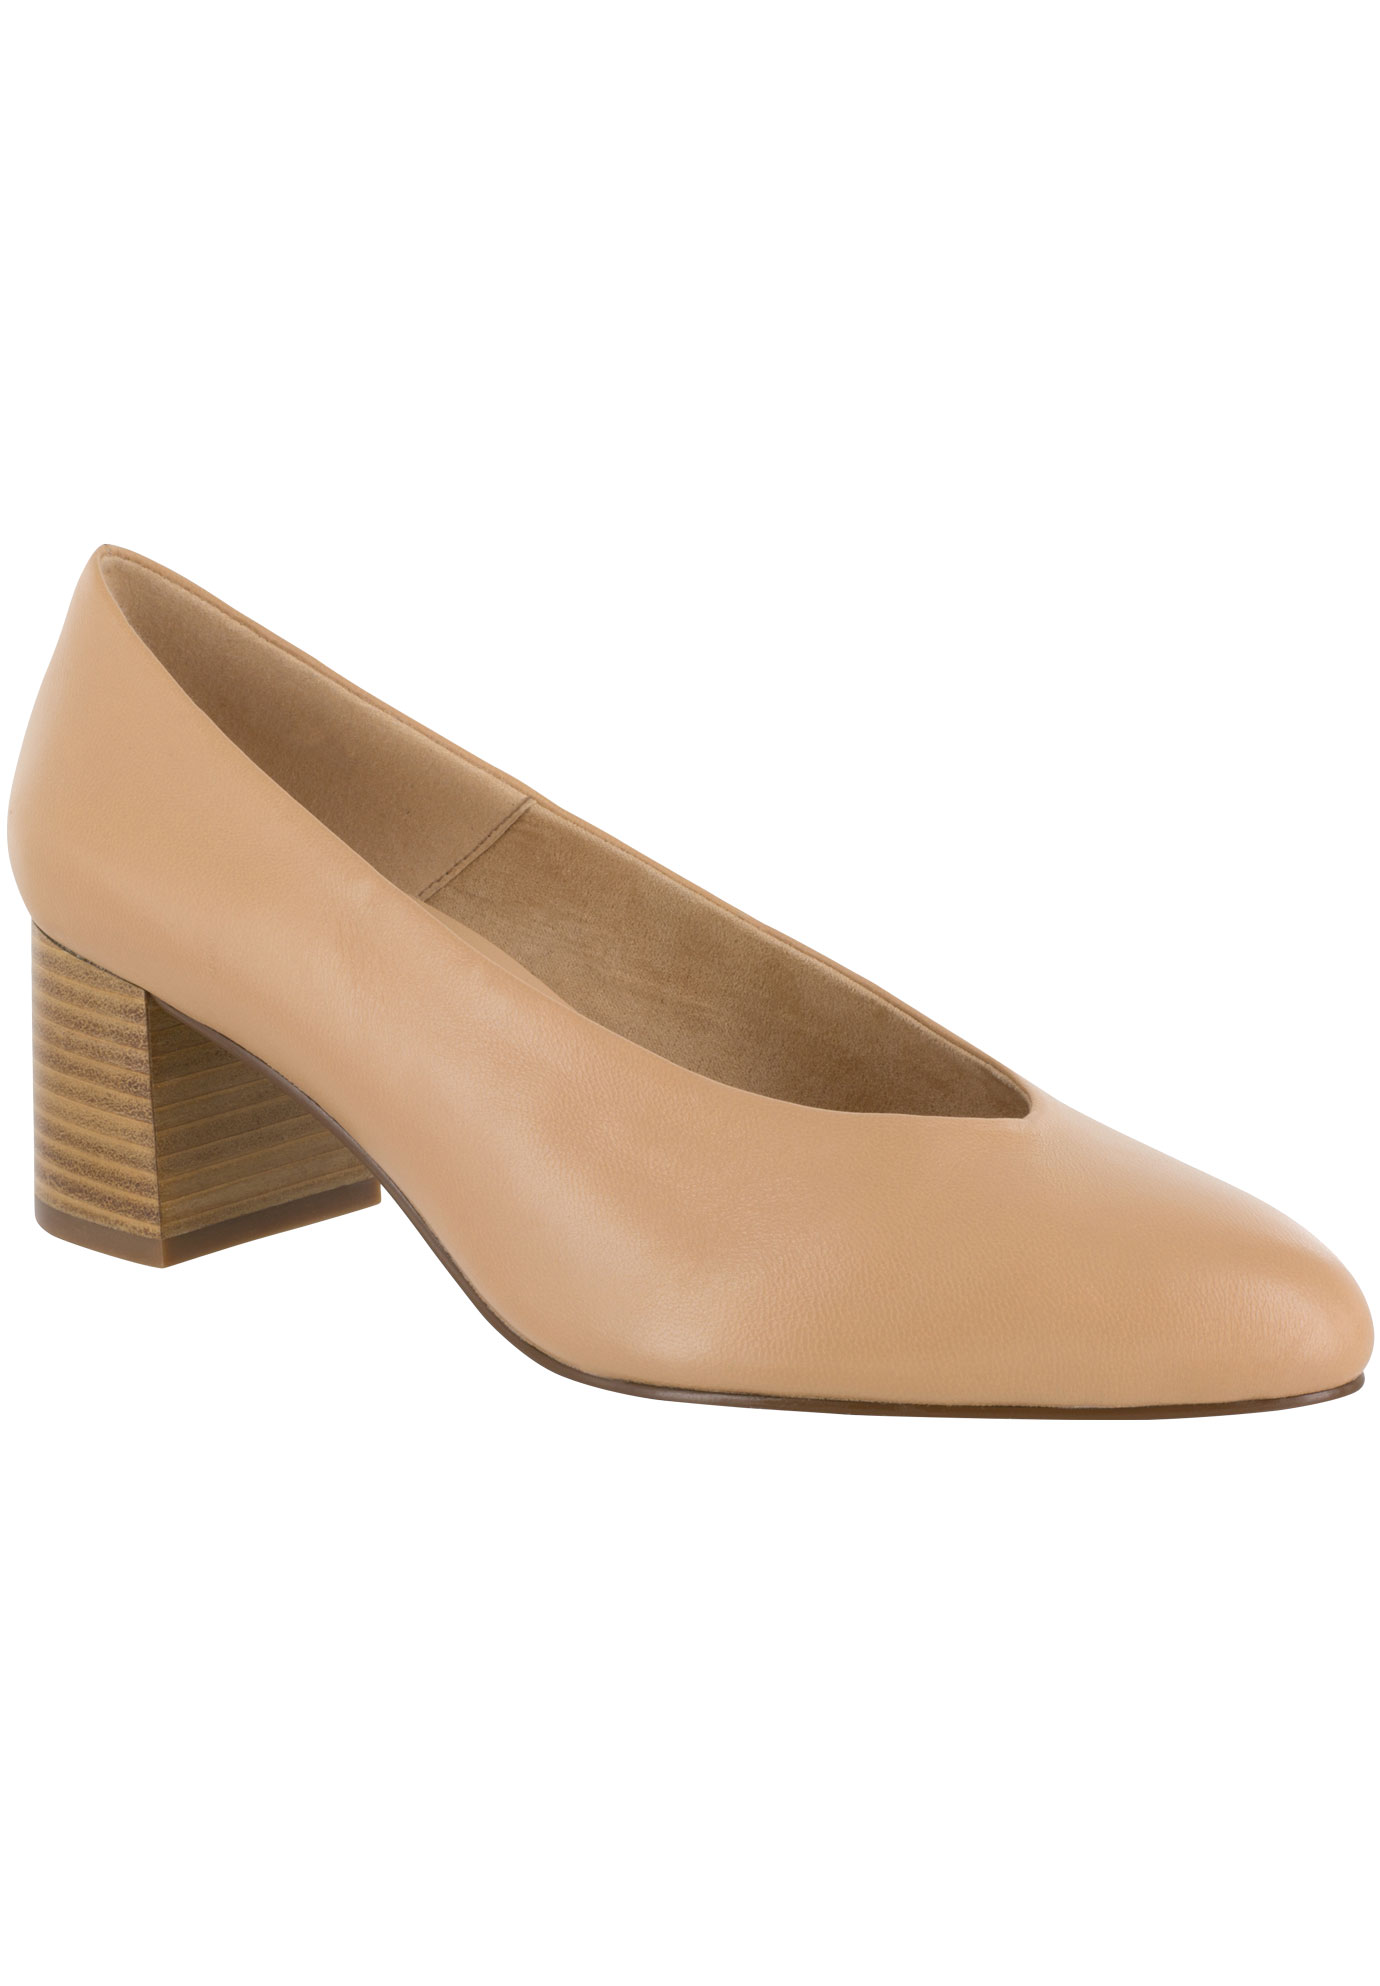 Jensen Pumps by Bella Vita®,